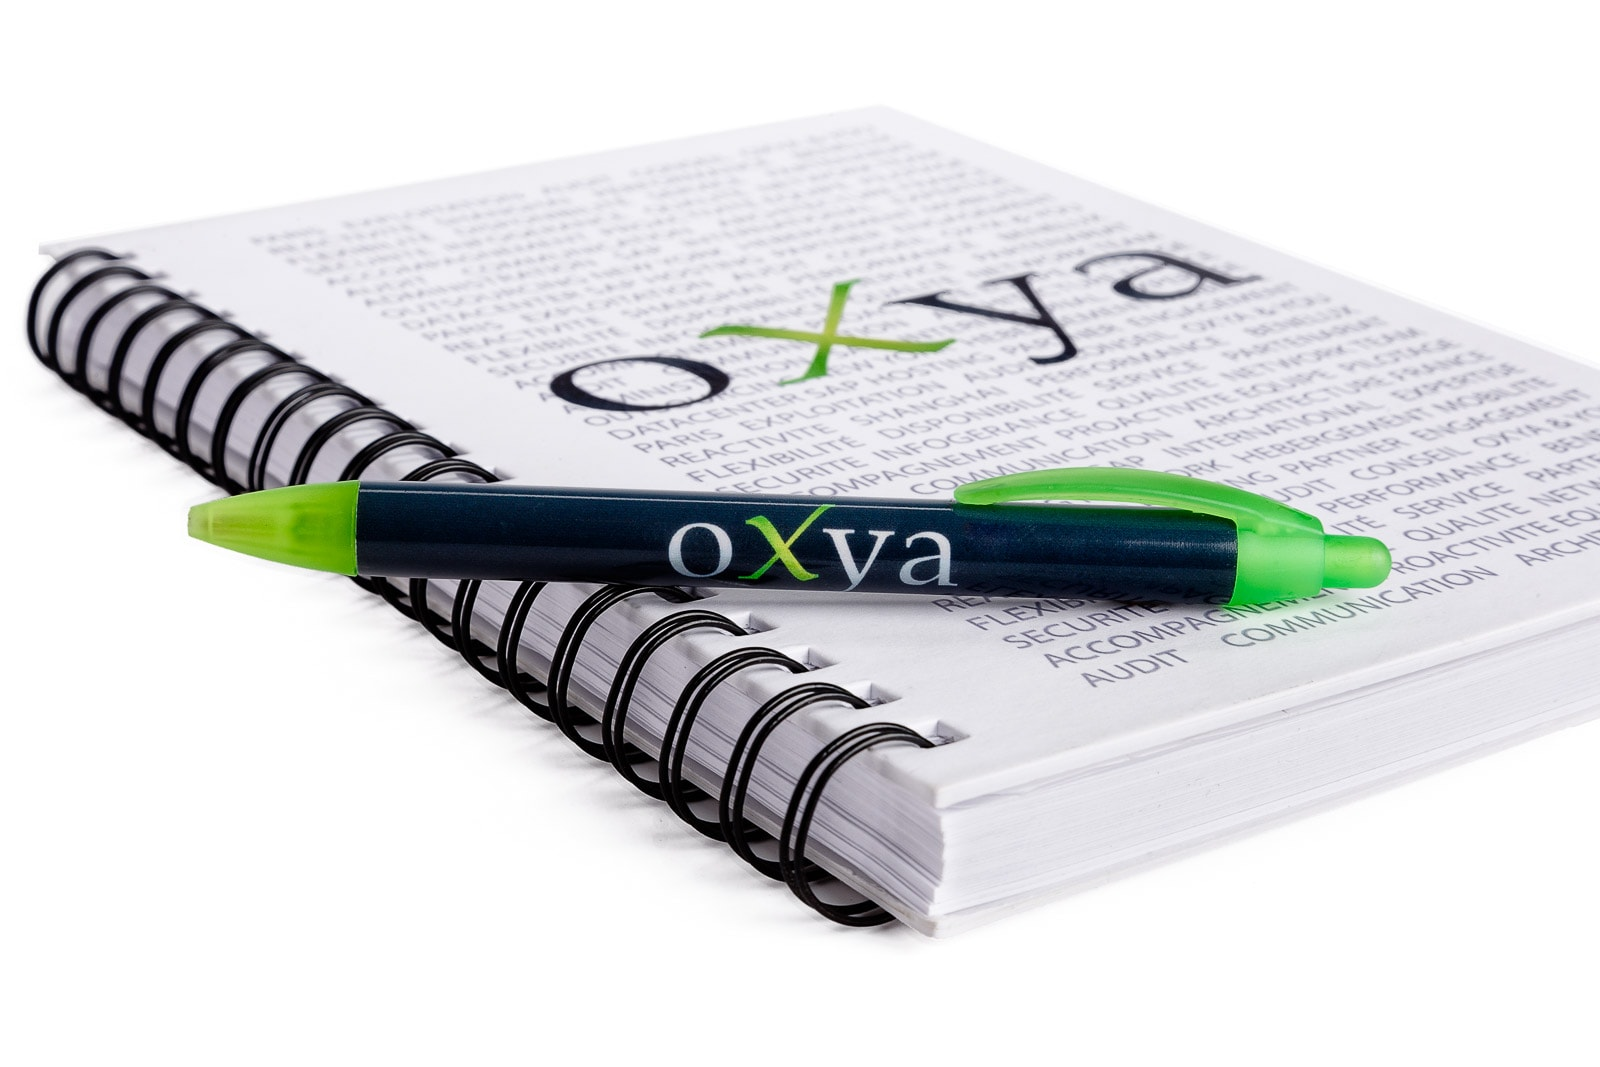 oxya uk stationery business merchandise on white background